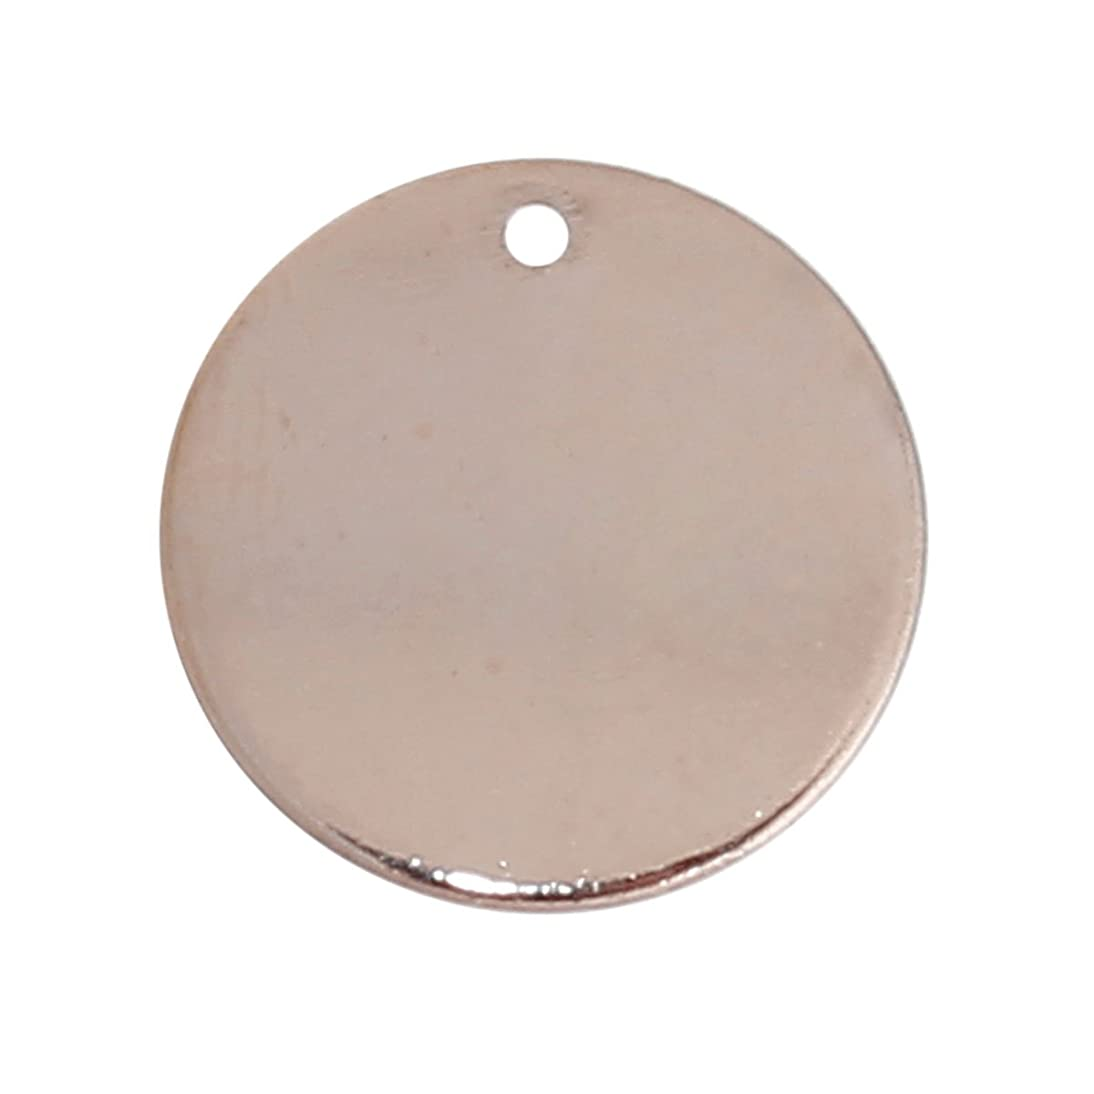 20 Rose Gold Plated Copper Round Circle Stamping Blank Tags for Metal Stamping 15mm or 5/8 Inch Diameter